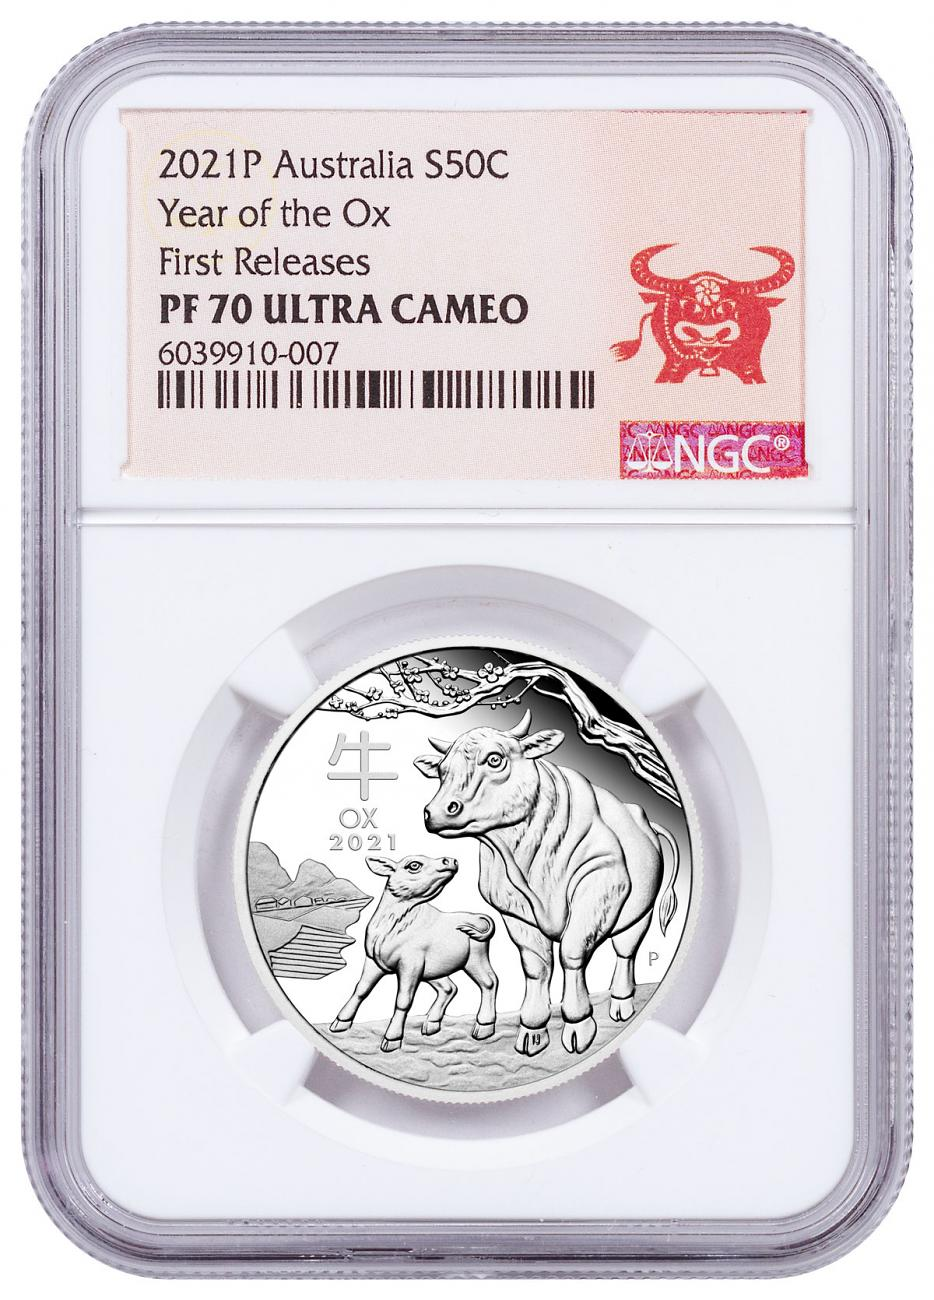 2021-P Australia 1/2 oz Lunar Year of the Ox Proof $0.50 Coin NGC PF70 UC FR Year of the Ox Label